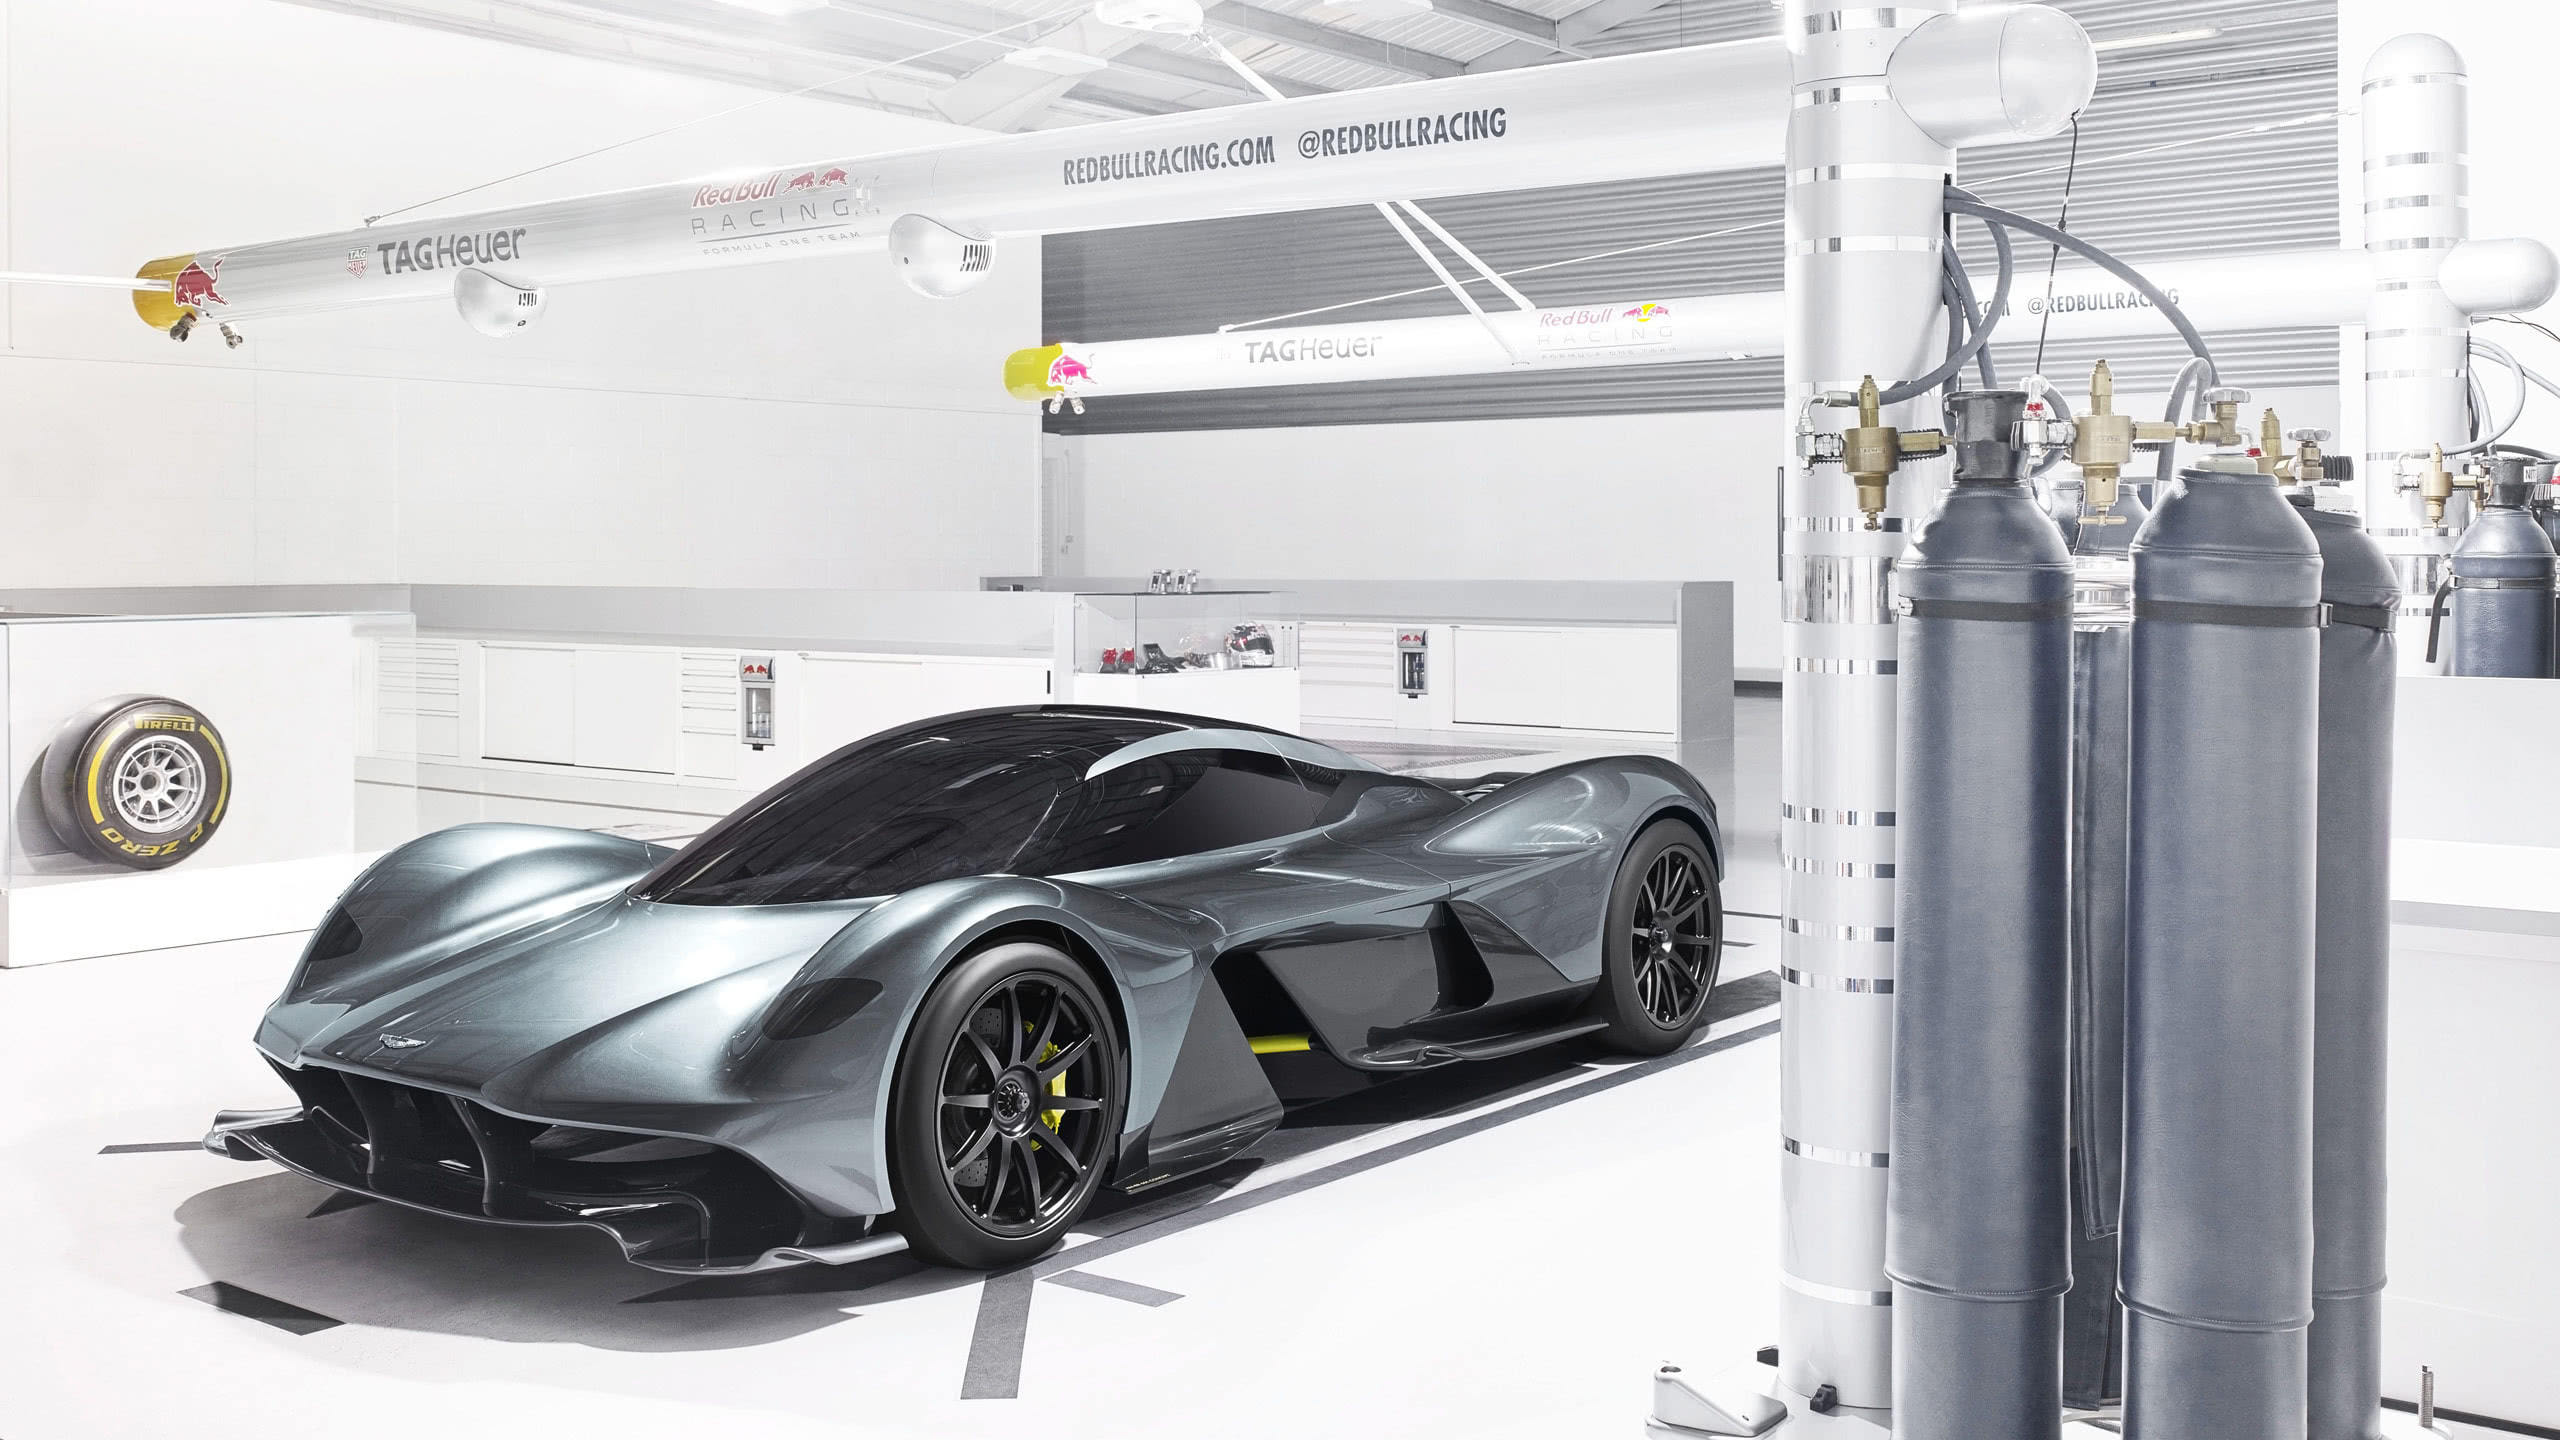 aston martin valkyrie am rb wqhd 1440p wallpaper